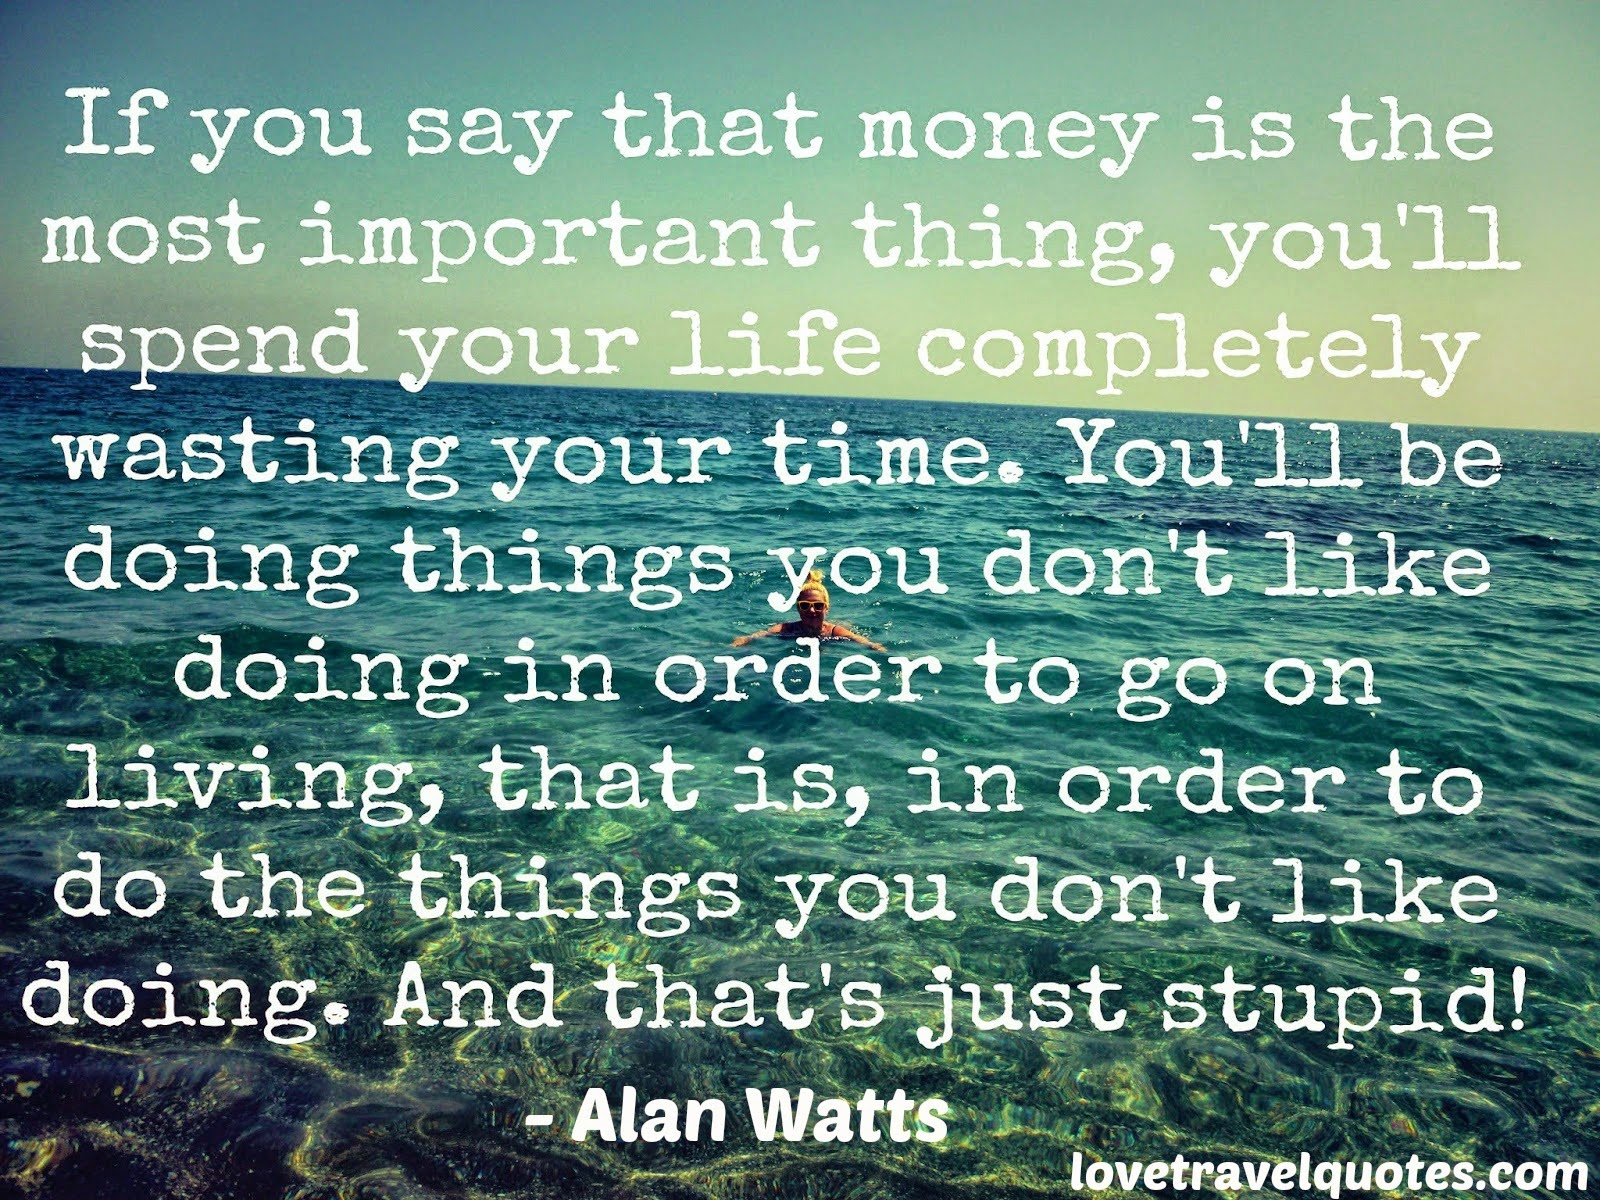 If you say money is the most important thing you'll spend your life completely wasting your time